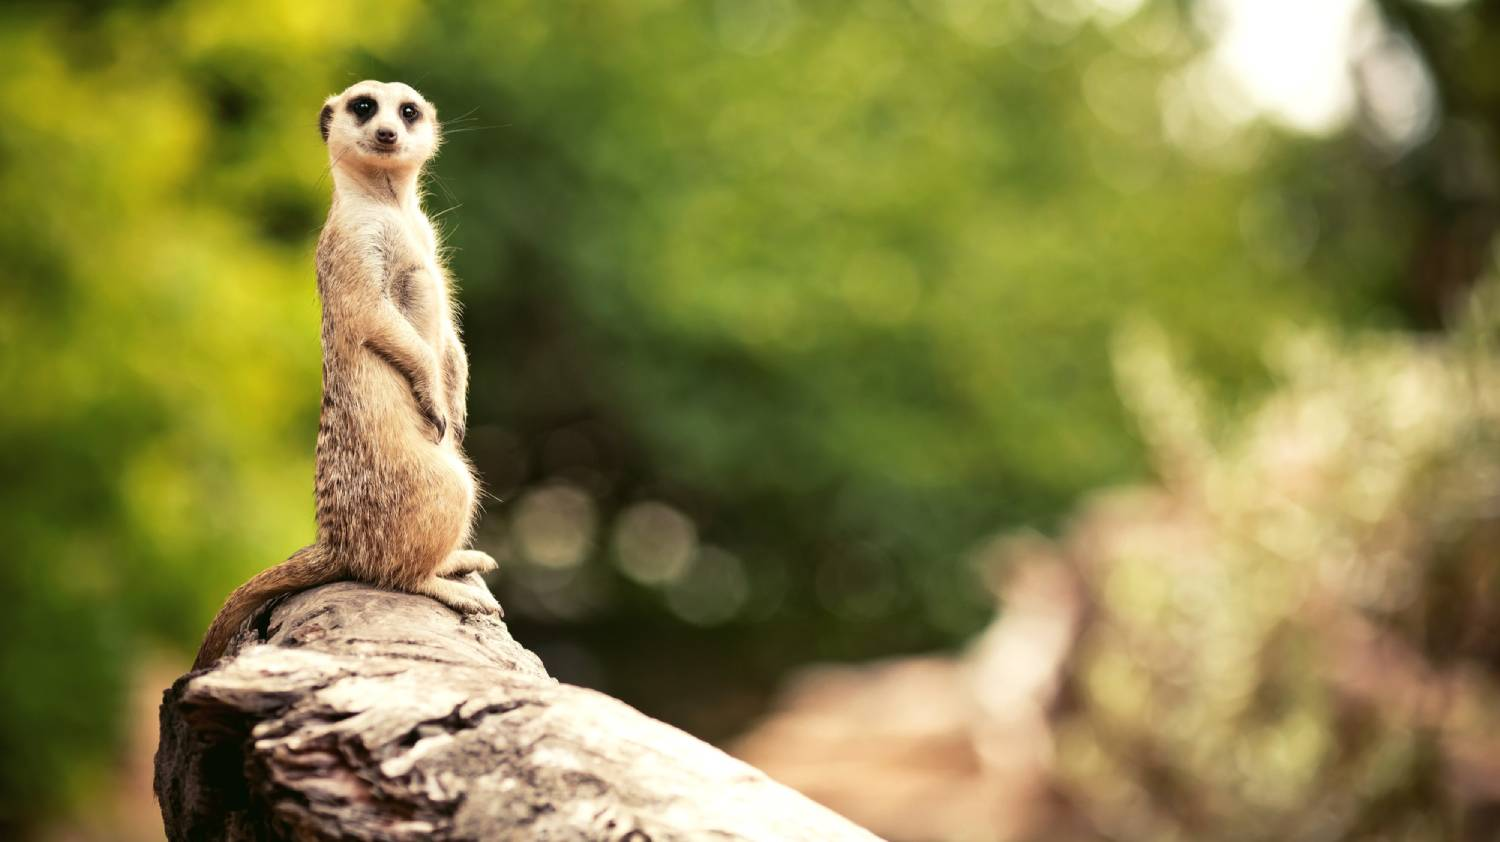 Melbourne Zoo - Things To Do In Melbourne